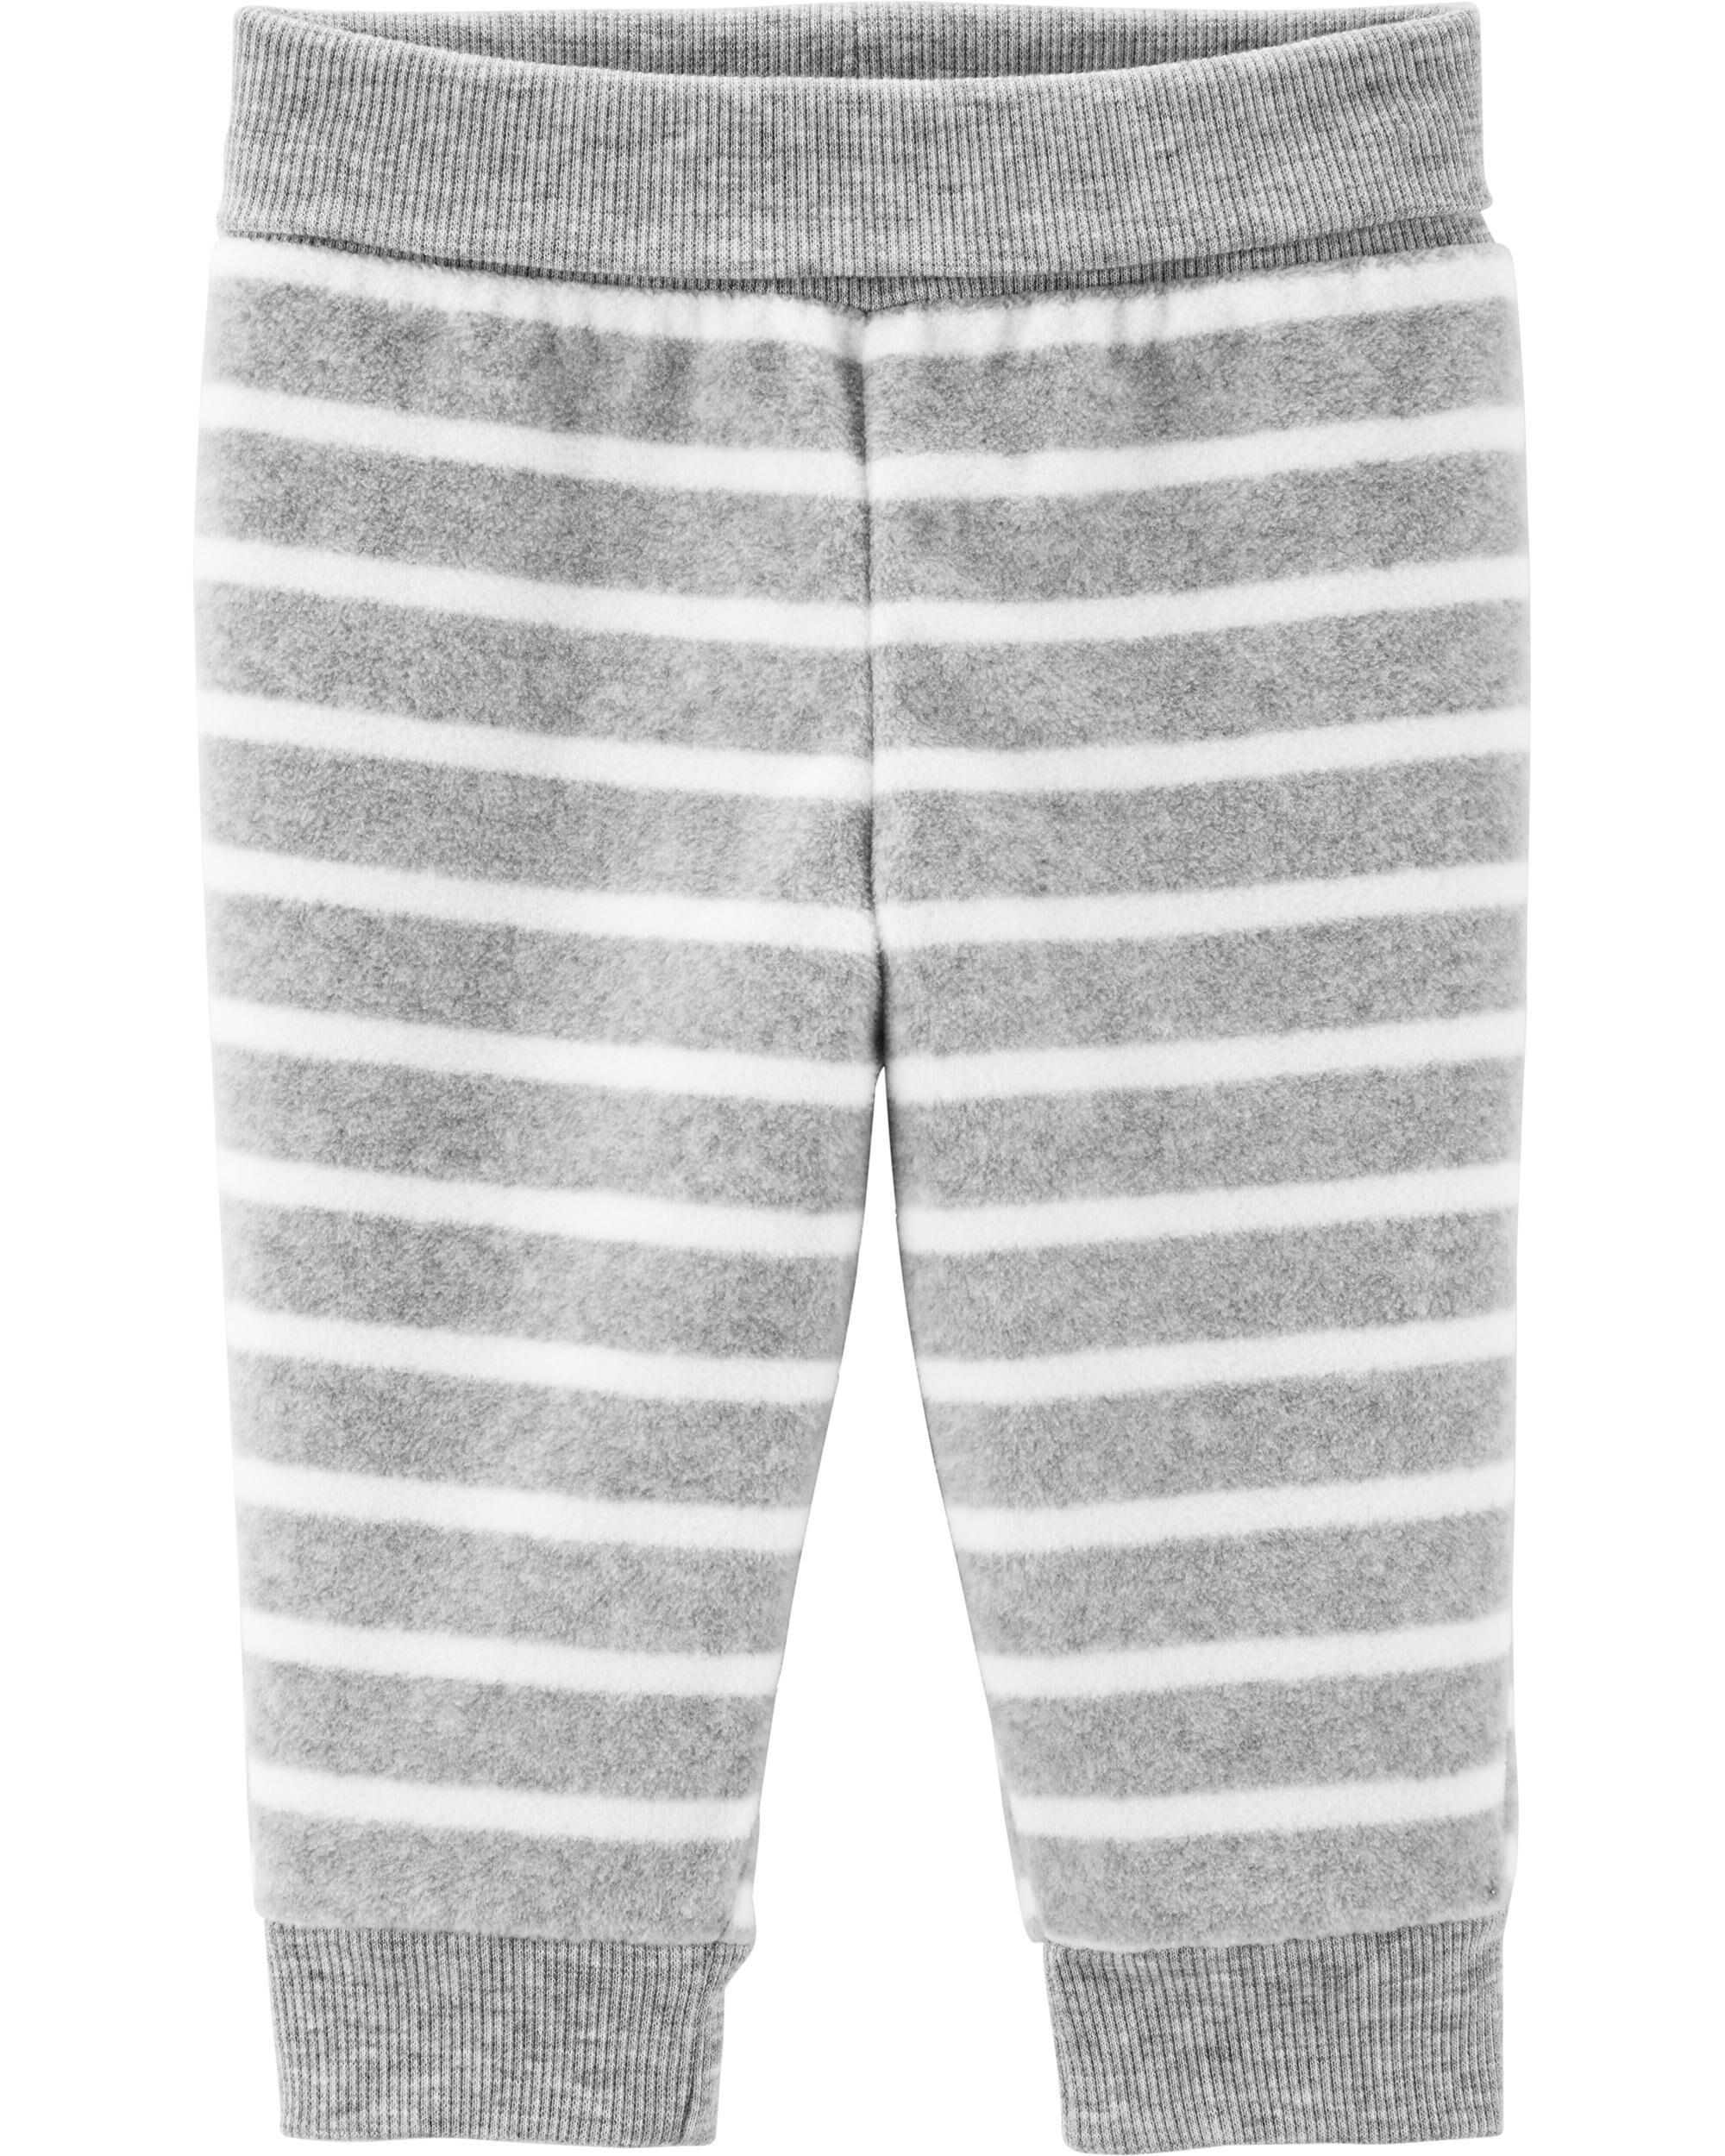 *CLEARANCE* Striped Pull-On Fleece Pants